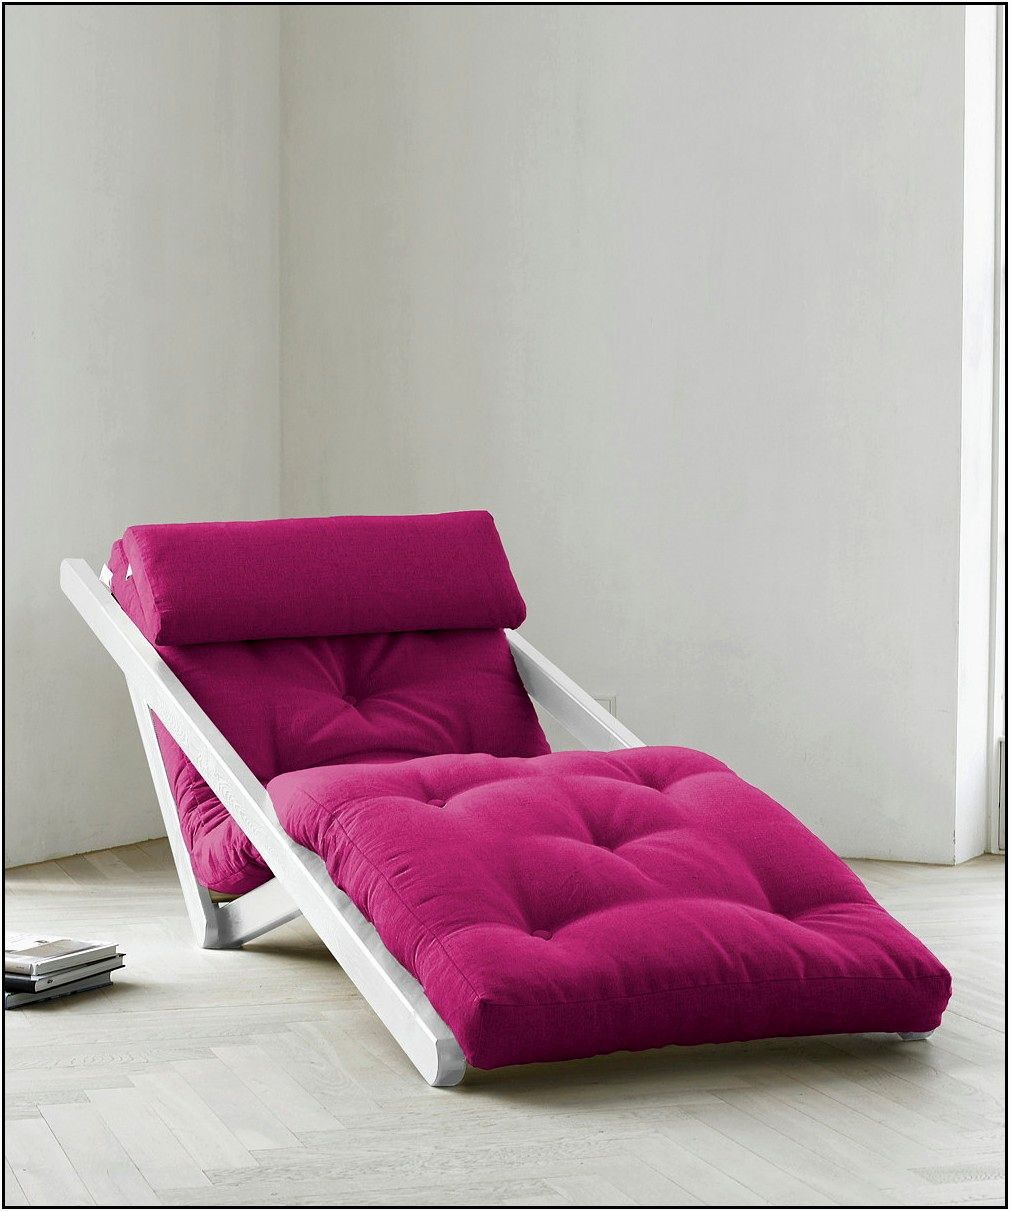 unique ikea sofa bed with chaise photograph-Sensational Ikea sofa Bed with Chaise Image